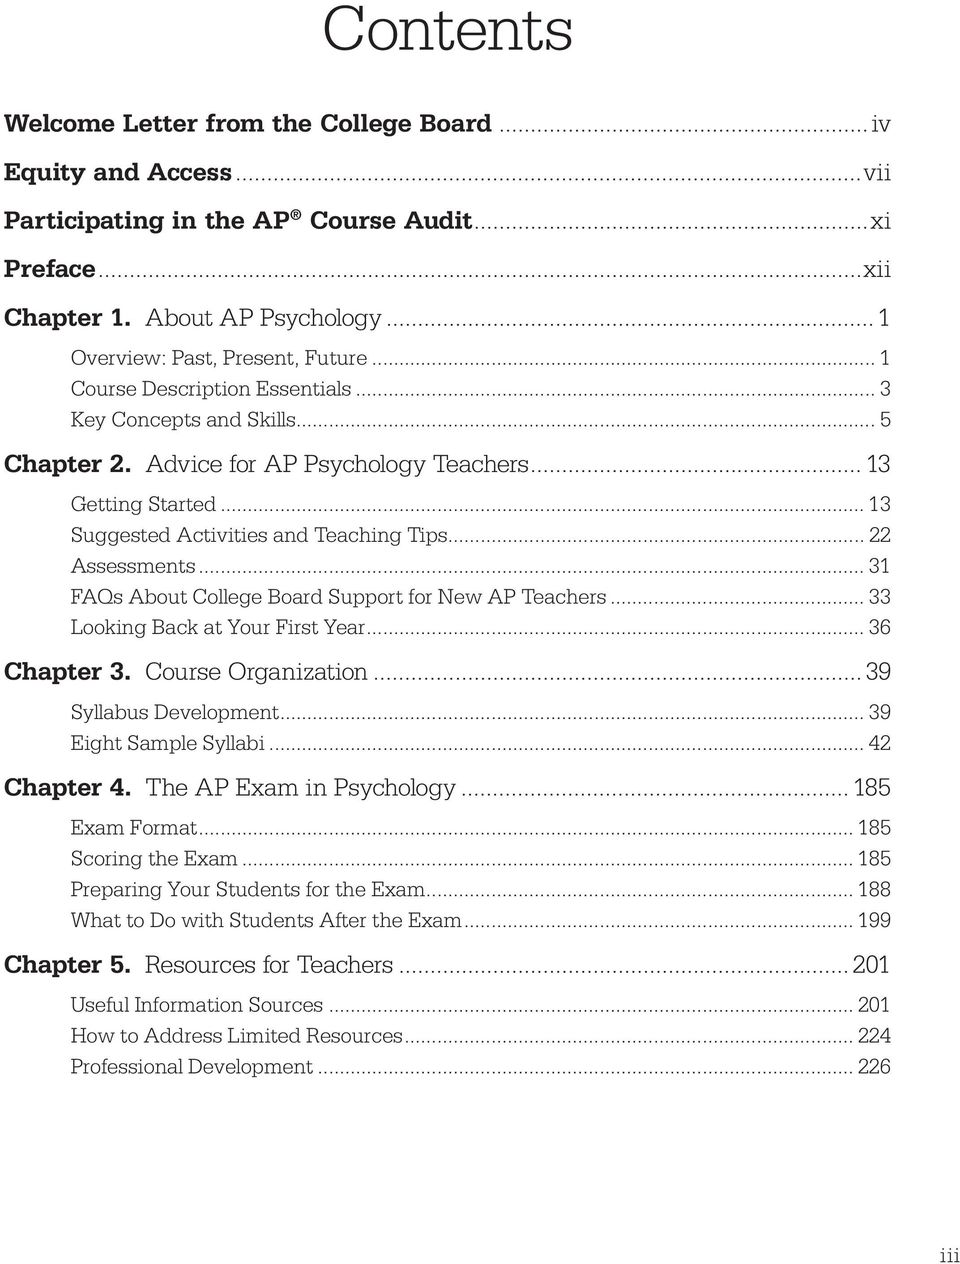 .. 31 FAQs About College Board Support for New AP Teachers... 33 Looking Back at Your First Year... 36 Chapter 3. Course Organization...39 Syllabus Development... 39 Eight Sample Syllabi.